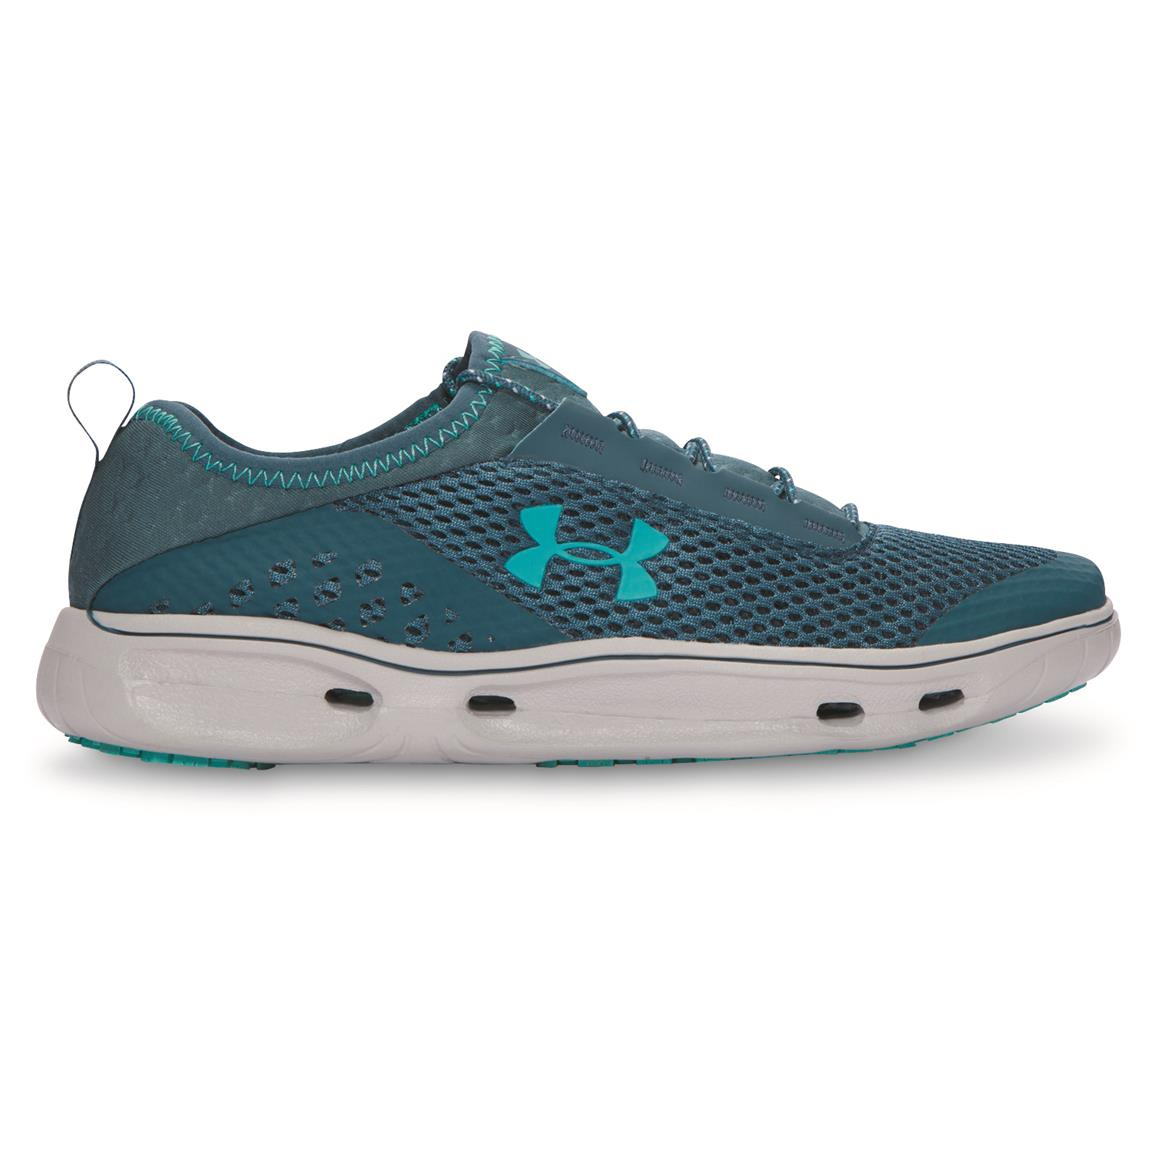 Under Armour Women's Kilchis Water Shoes, Marlin Blue/Elemental/Neptune